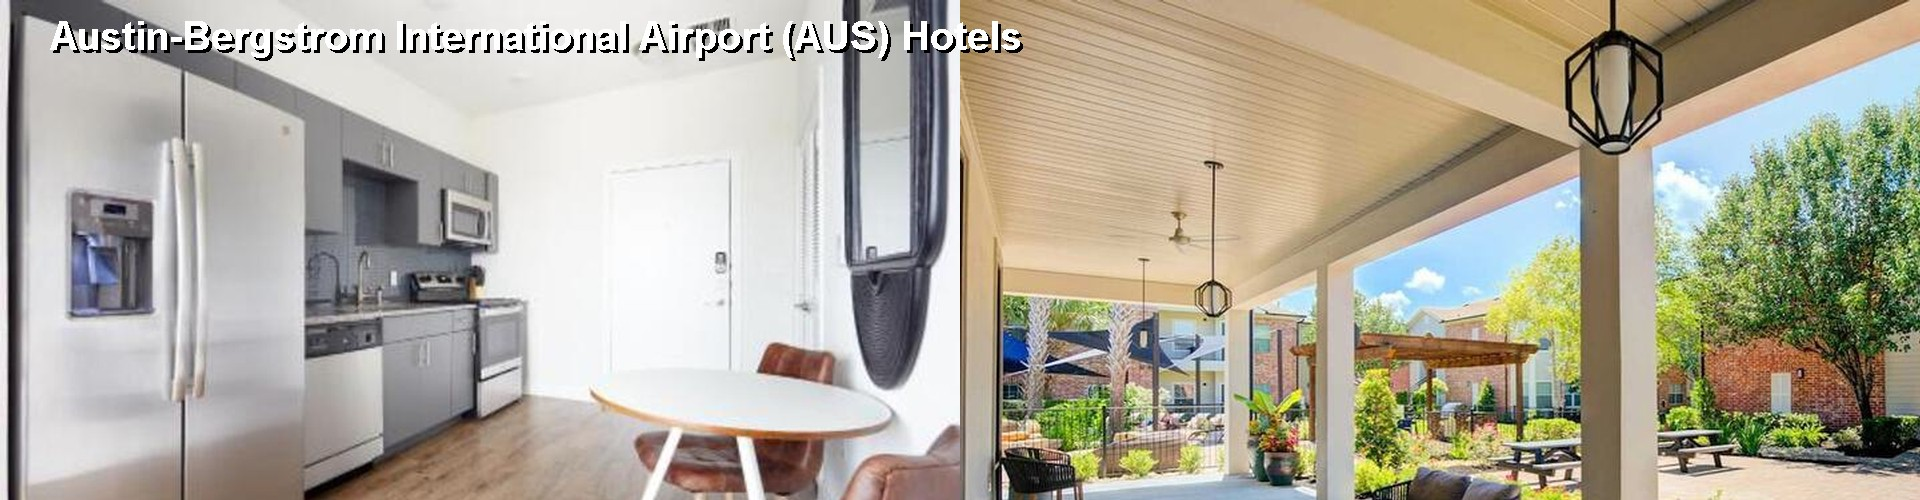 5 Best Hotels near Austin-Bergstrom International Airport (AUS)